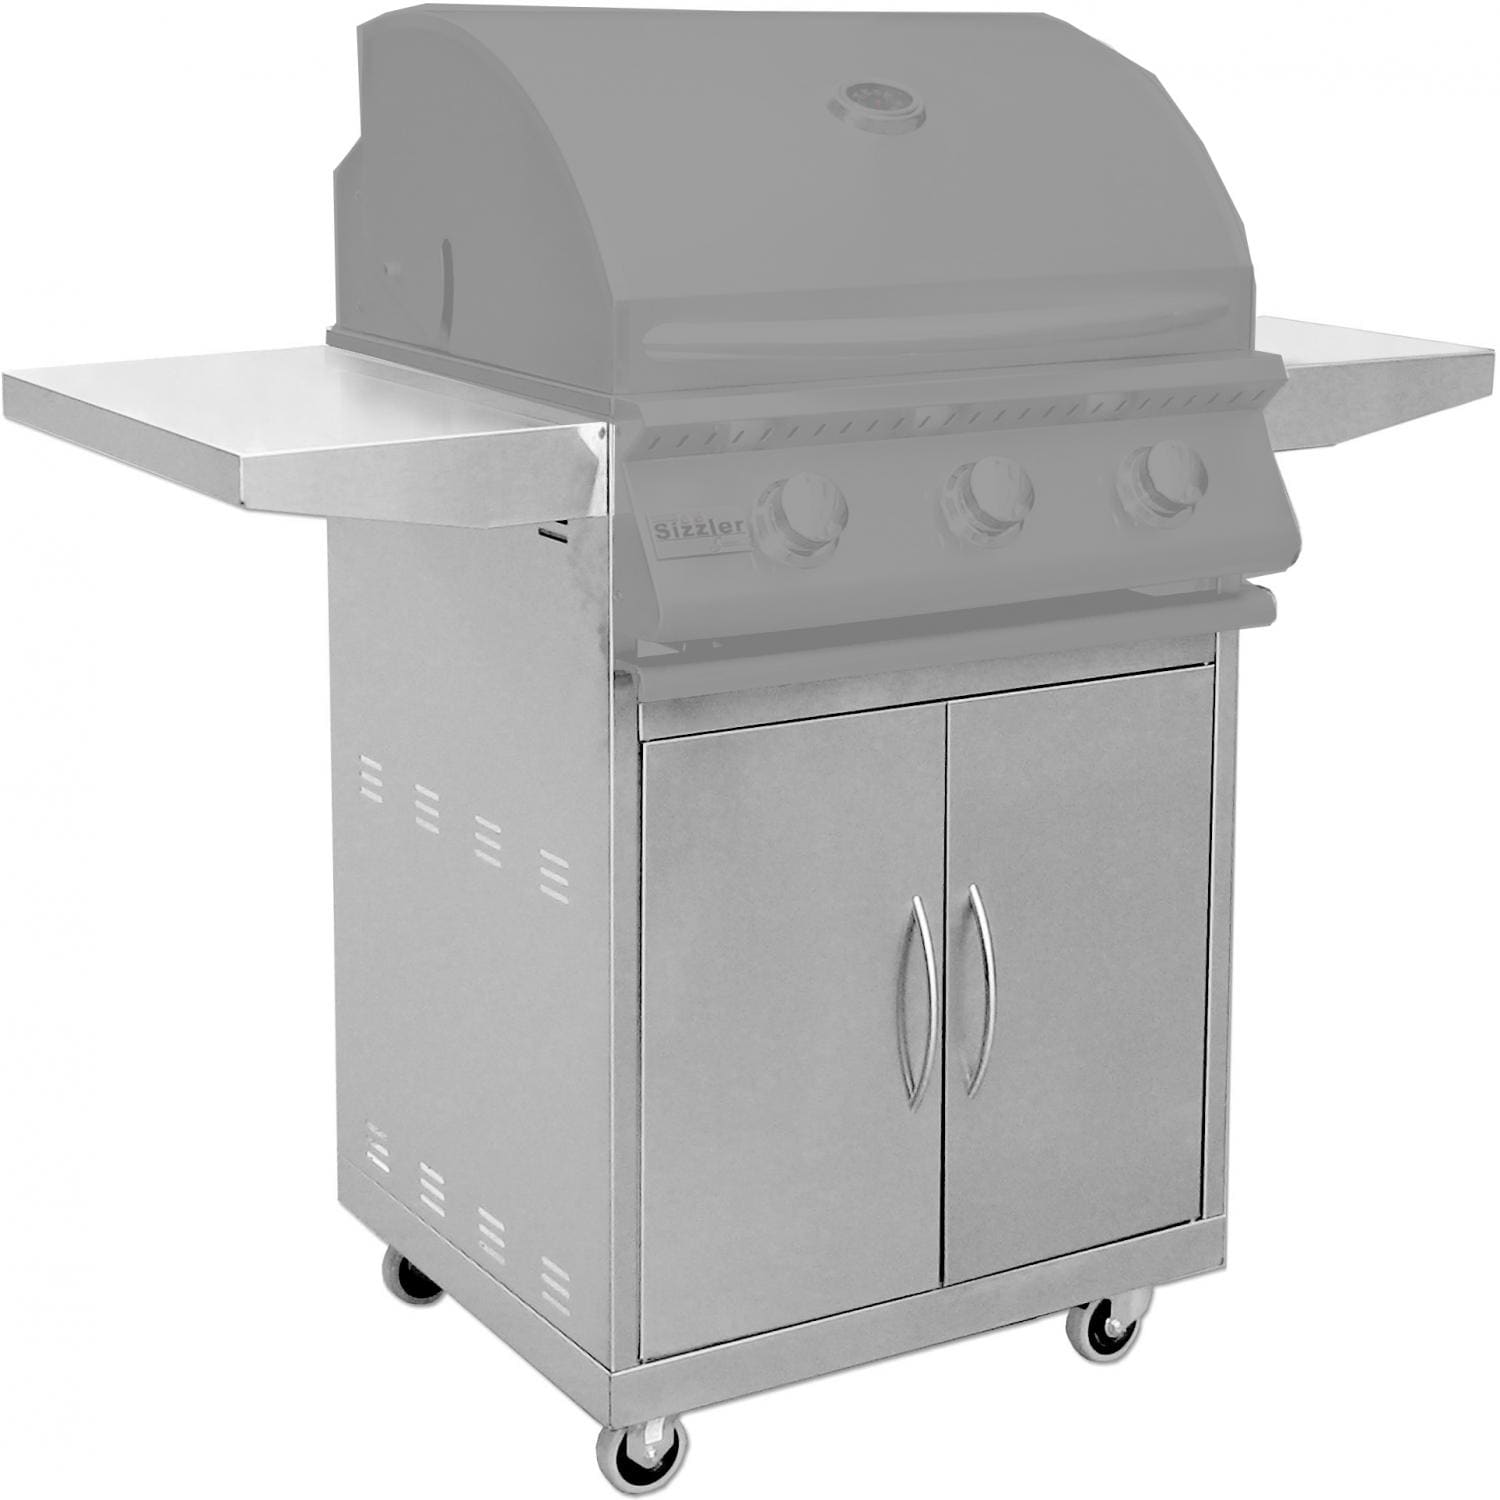 Summerset 26-Inch Gas Grill Cart For Sizzler Gas Grills - CART-SIZ26